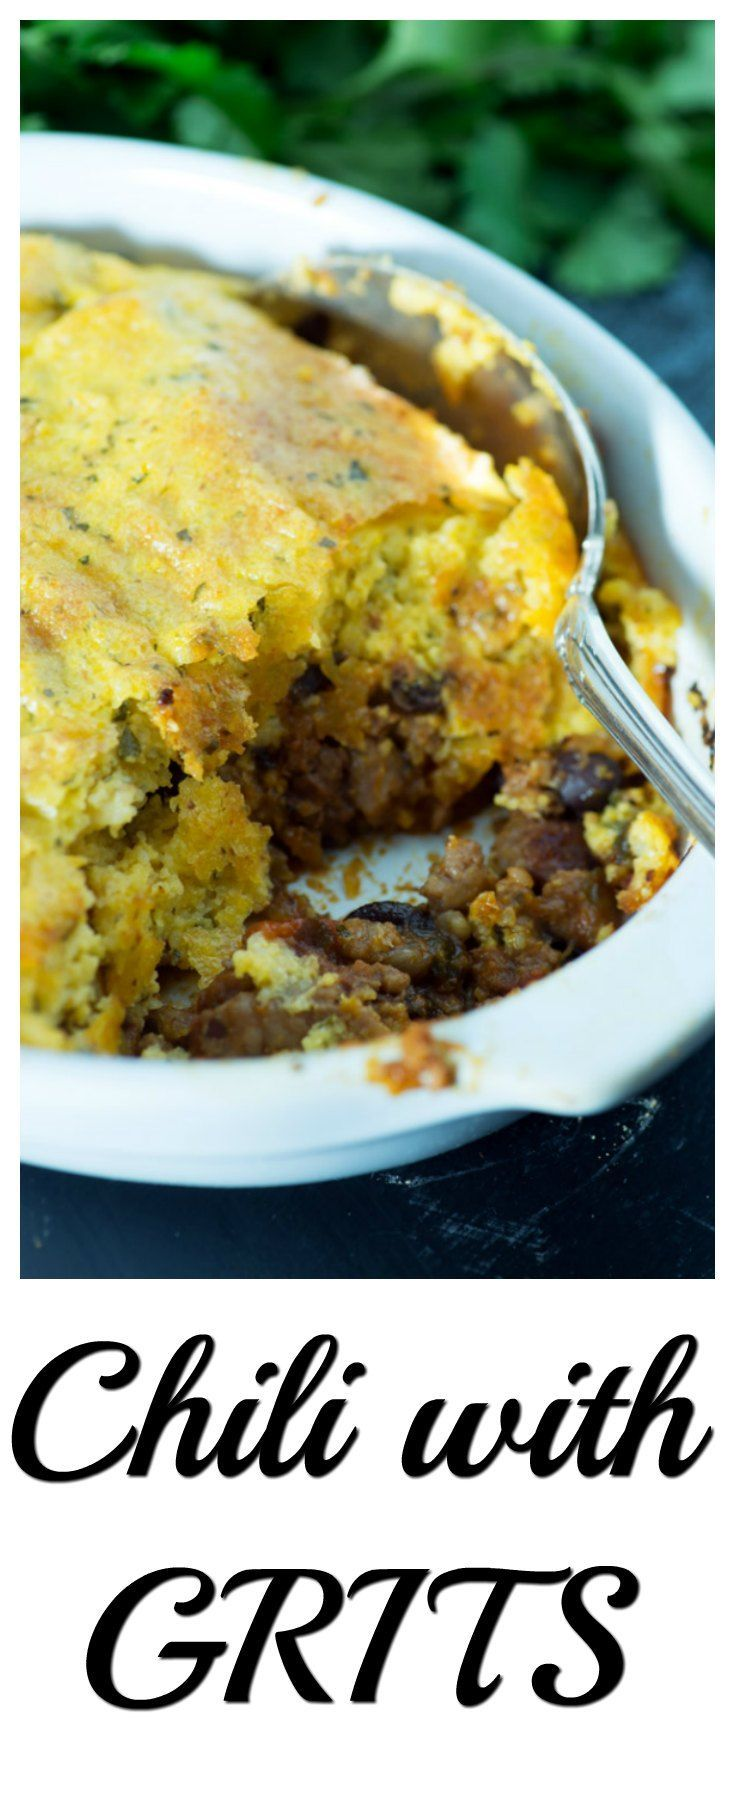 Change things up a bit and try chili topped with cheesy grits. A great Southern twist on Shepards pie.